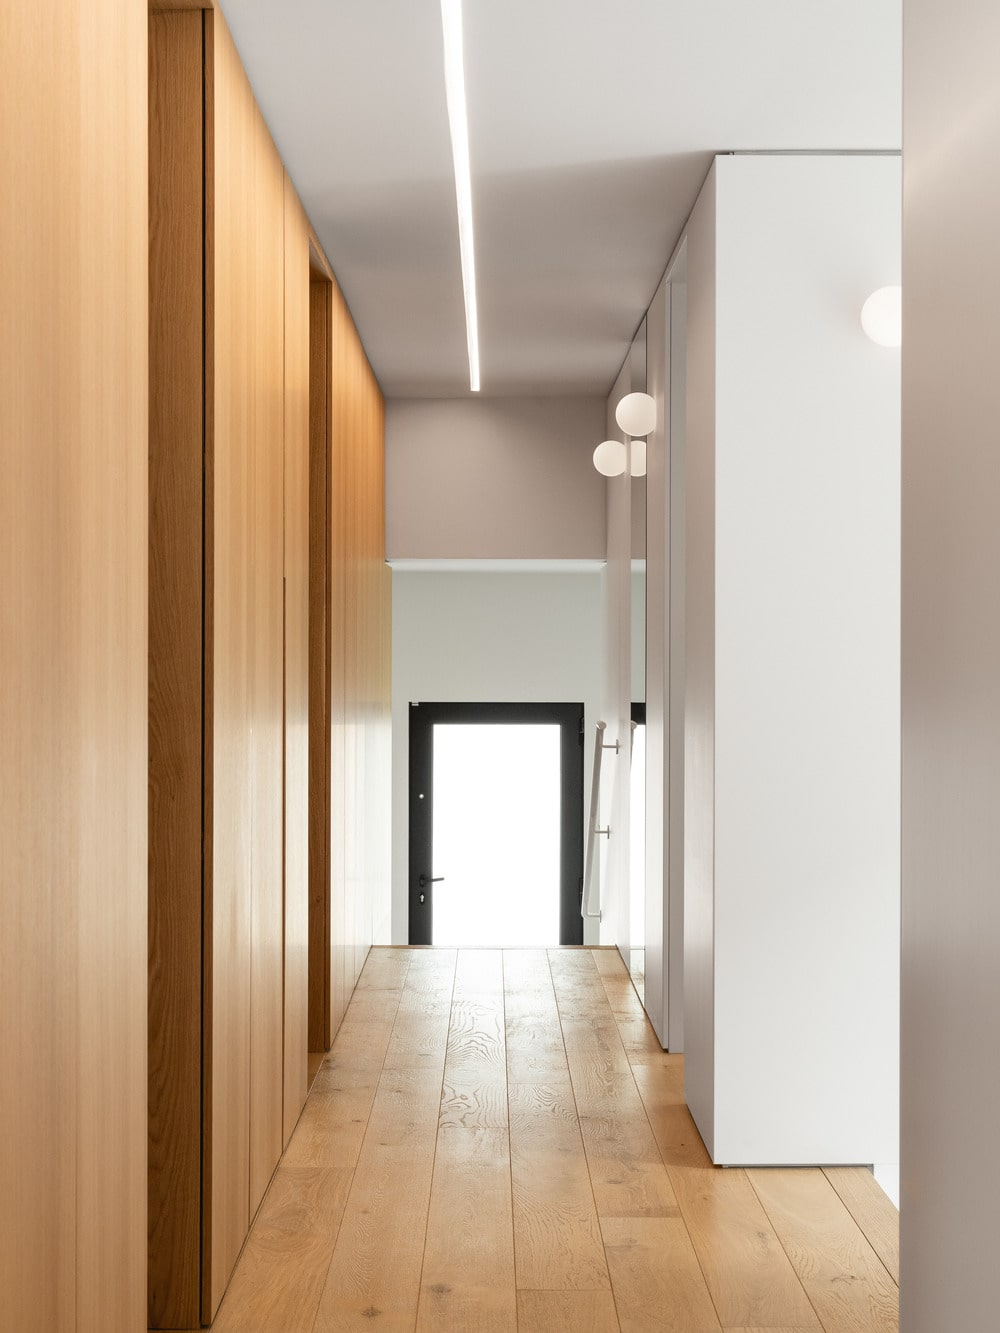 This is a hallway within the house that has wooden walls on the sides brightened by the bright ceiling and pillars.